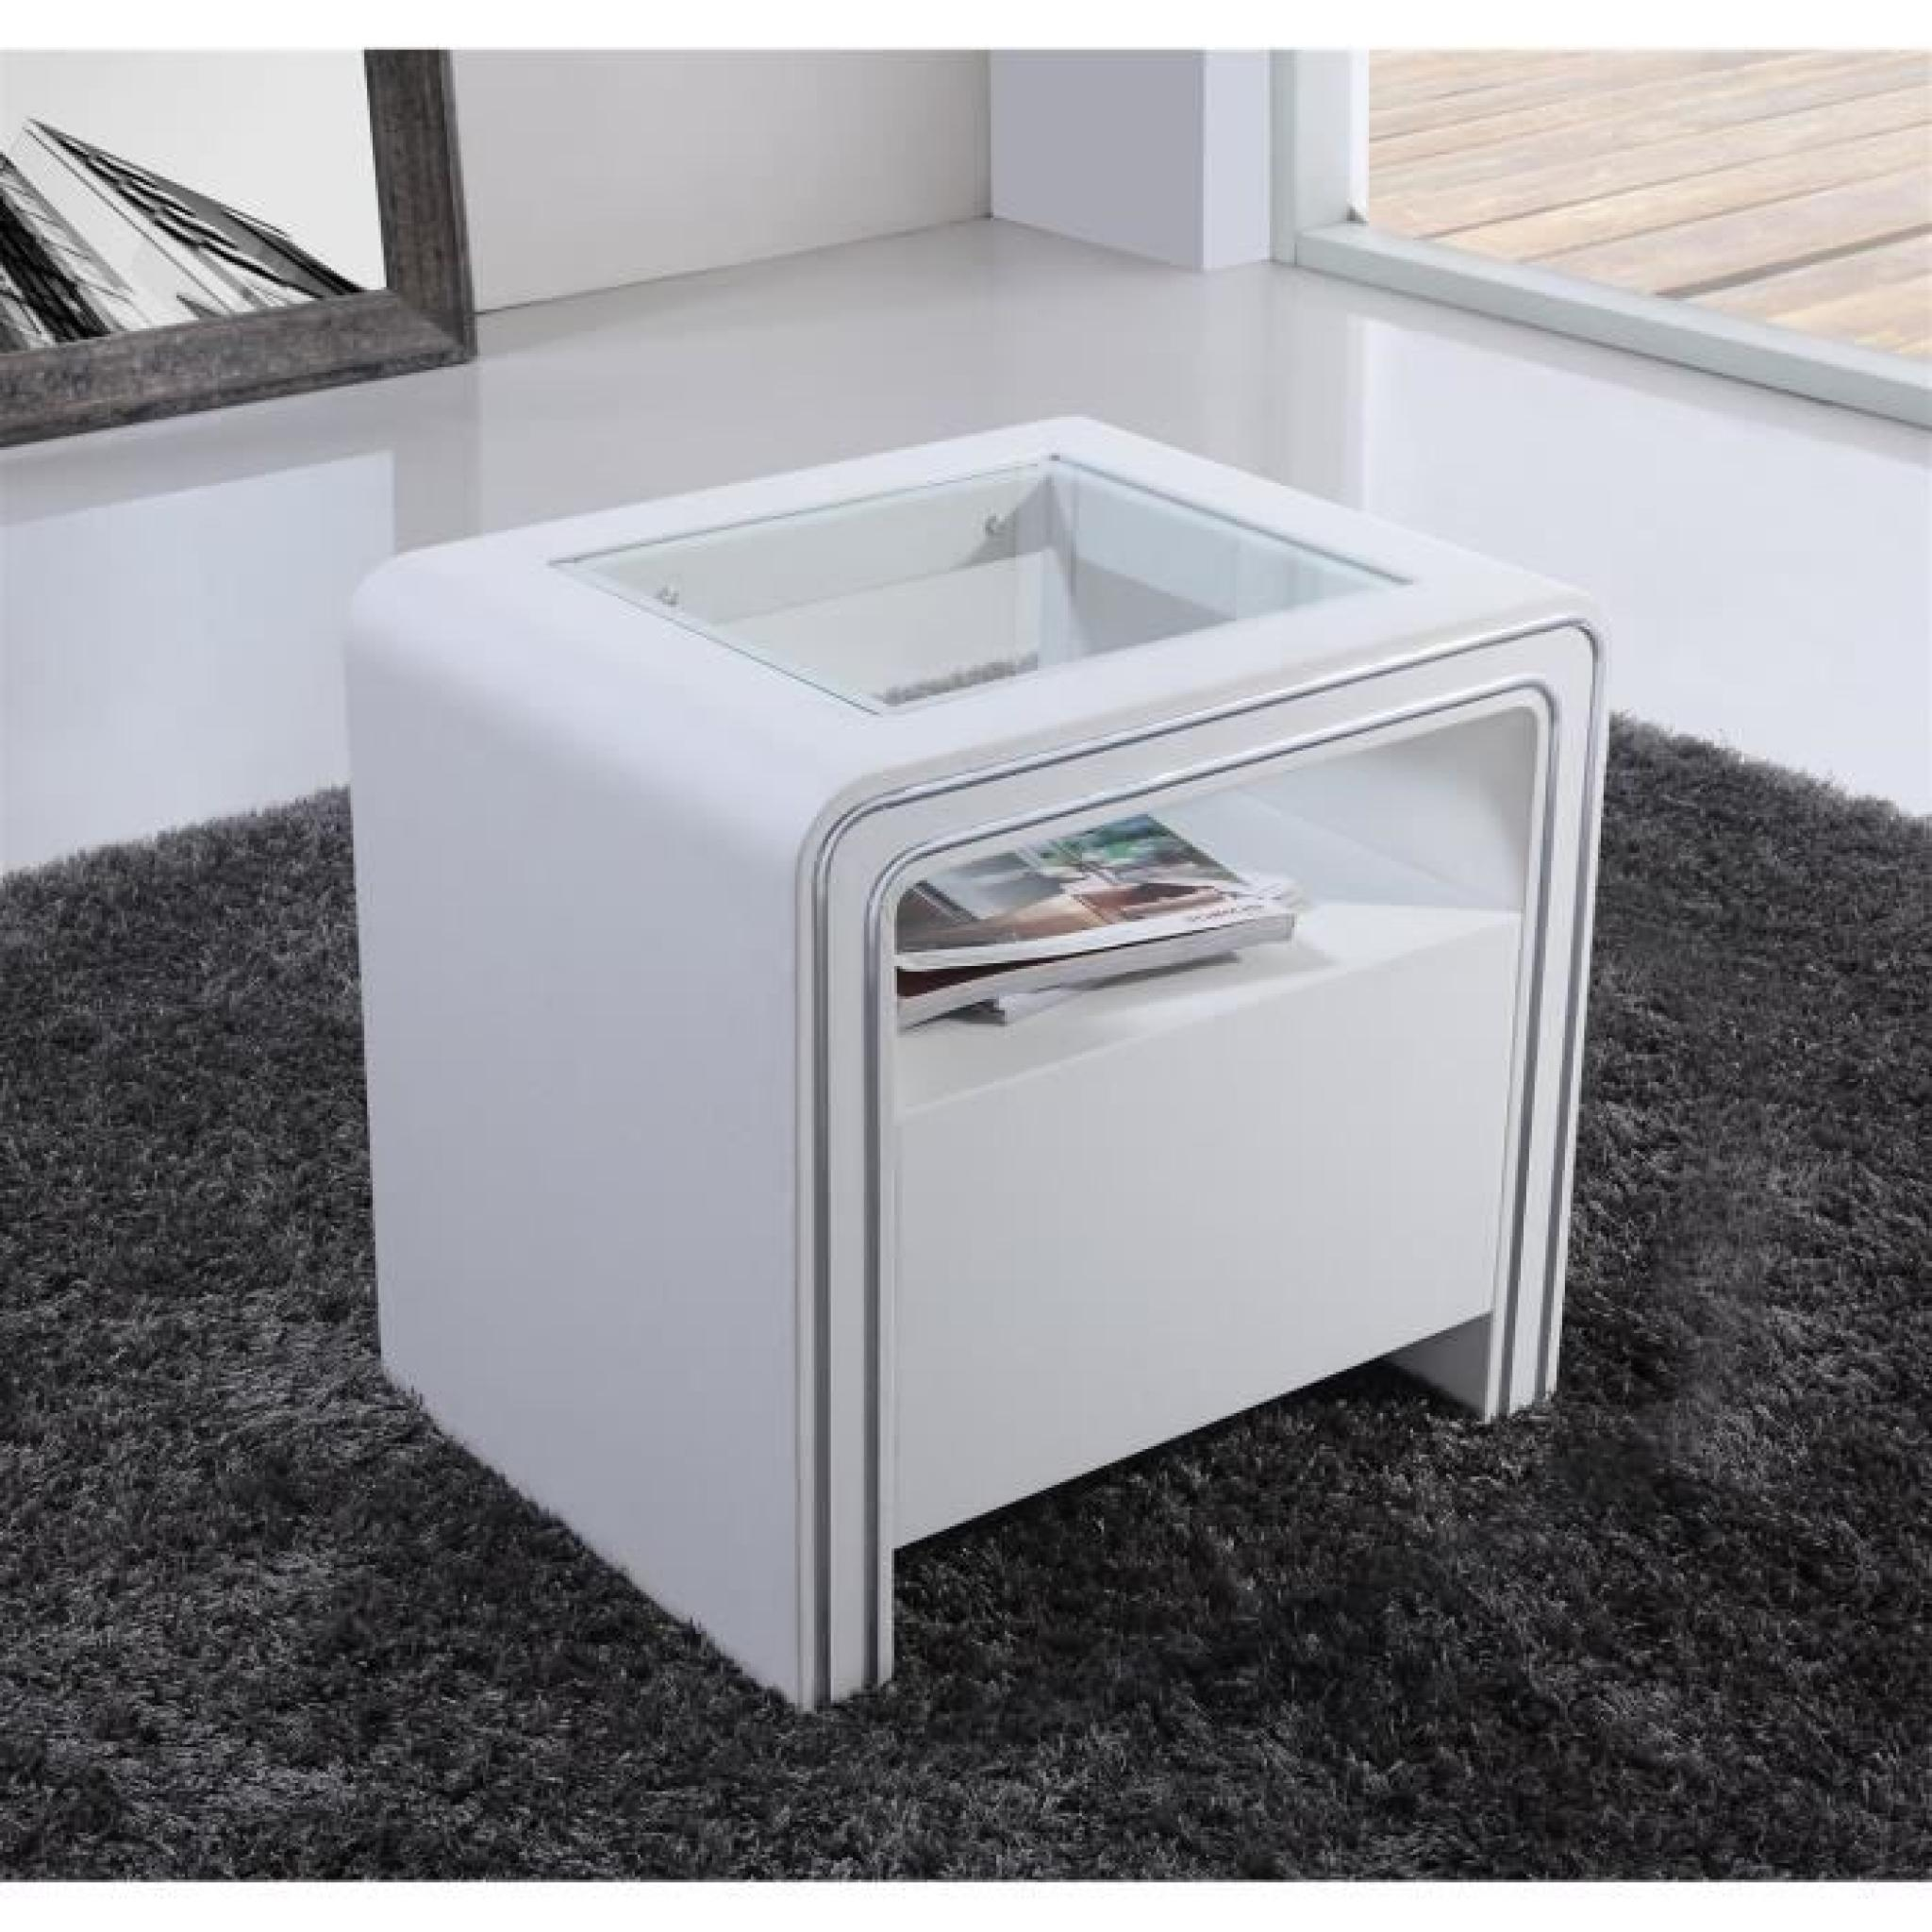 Table de chevet s85 blanc simili cuir achat vente table - Table de chevet blanc ...